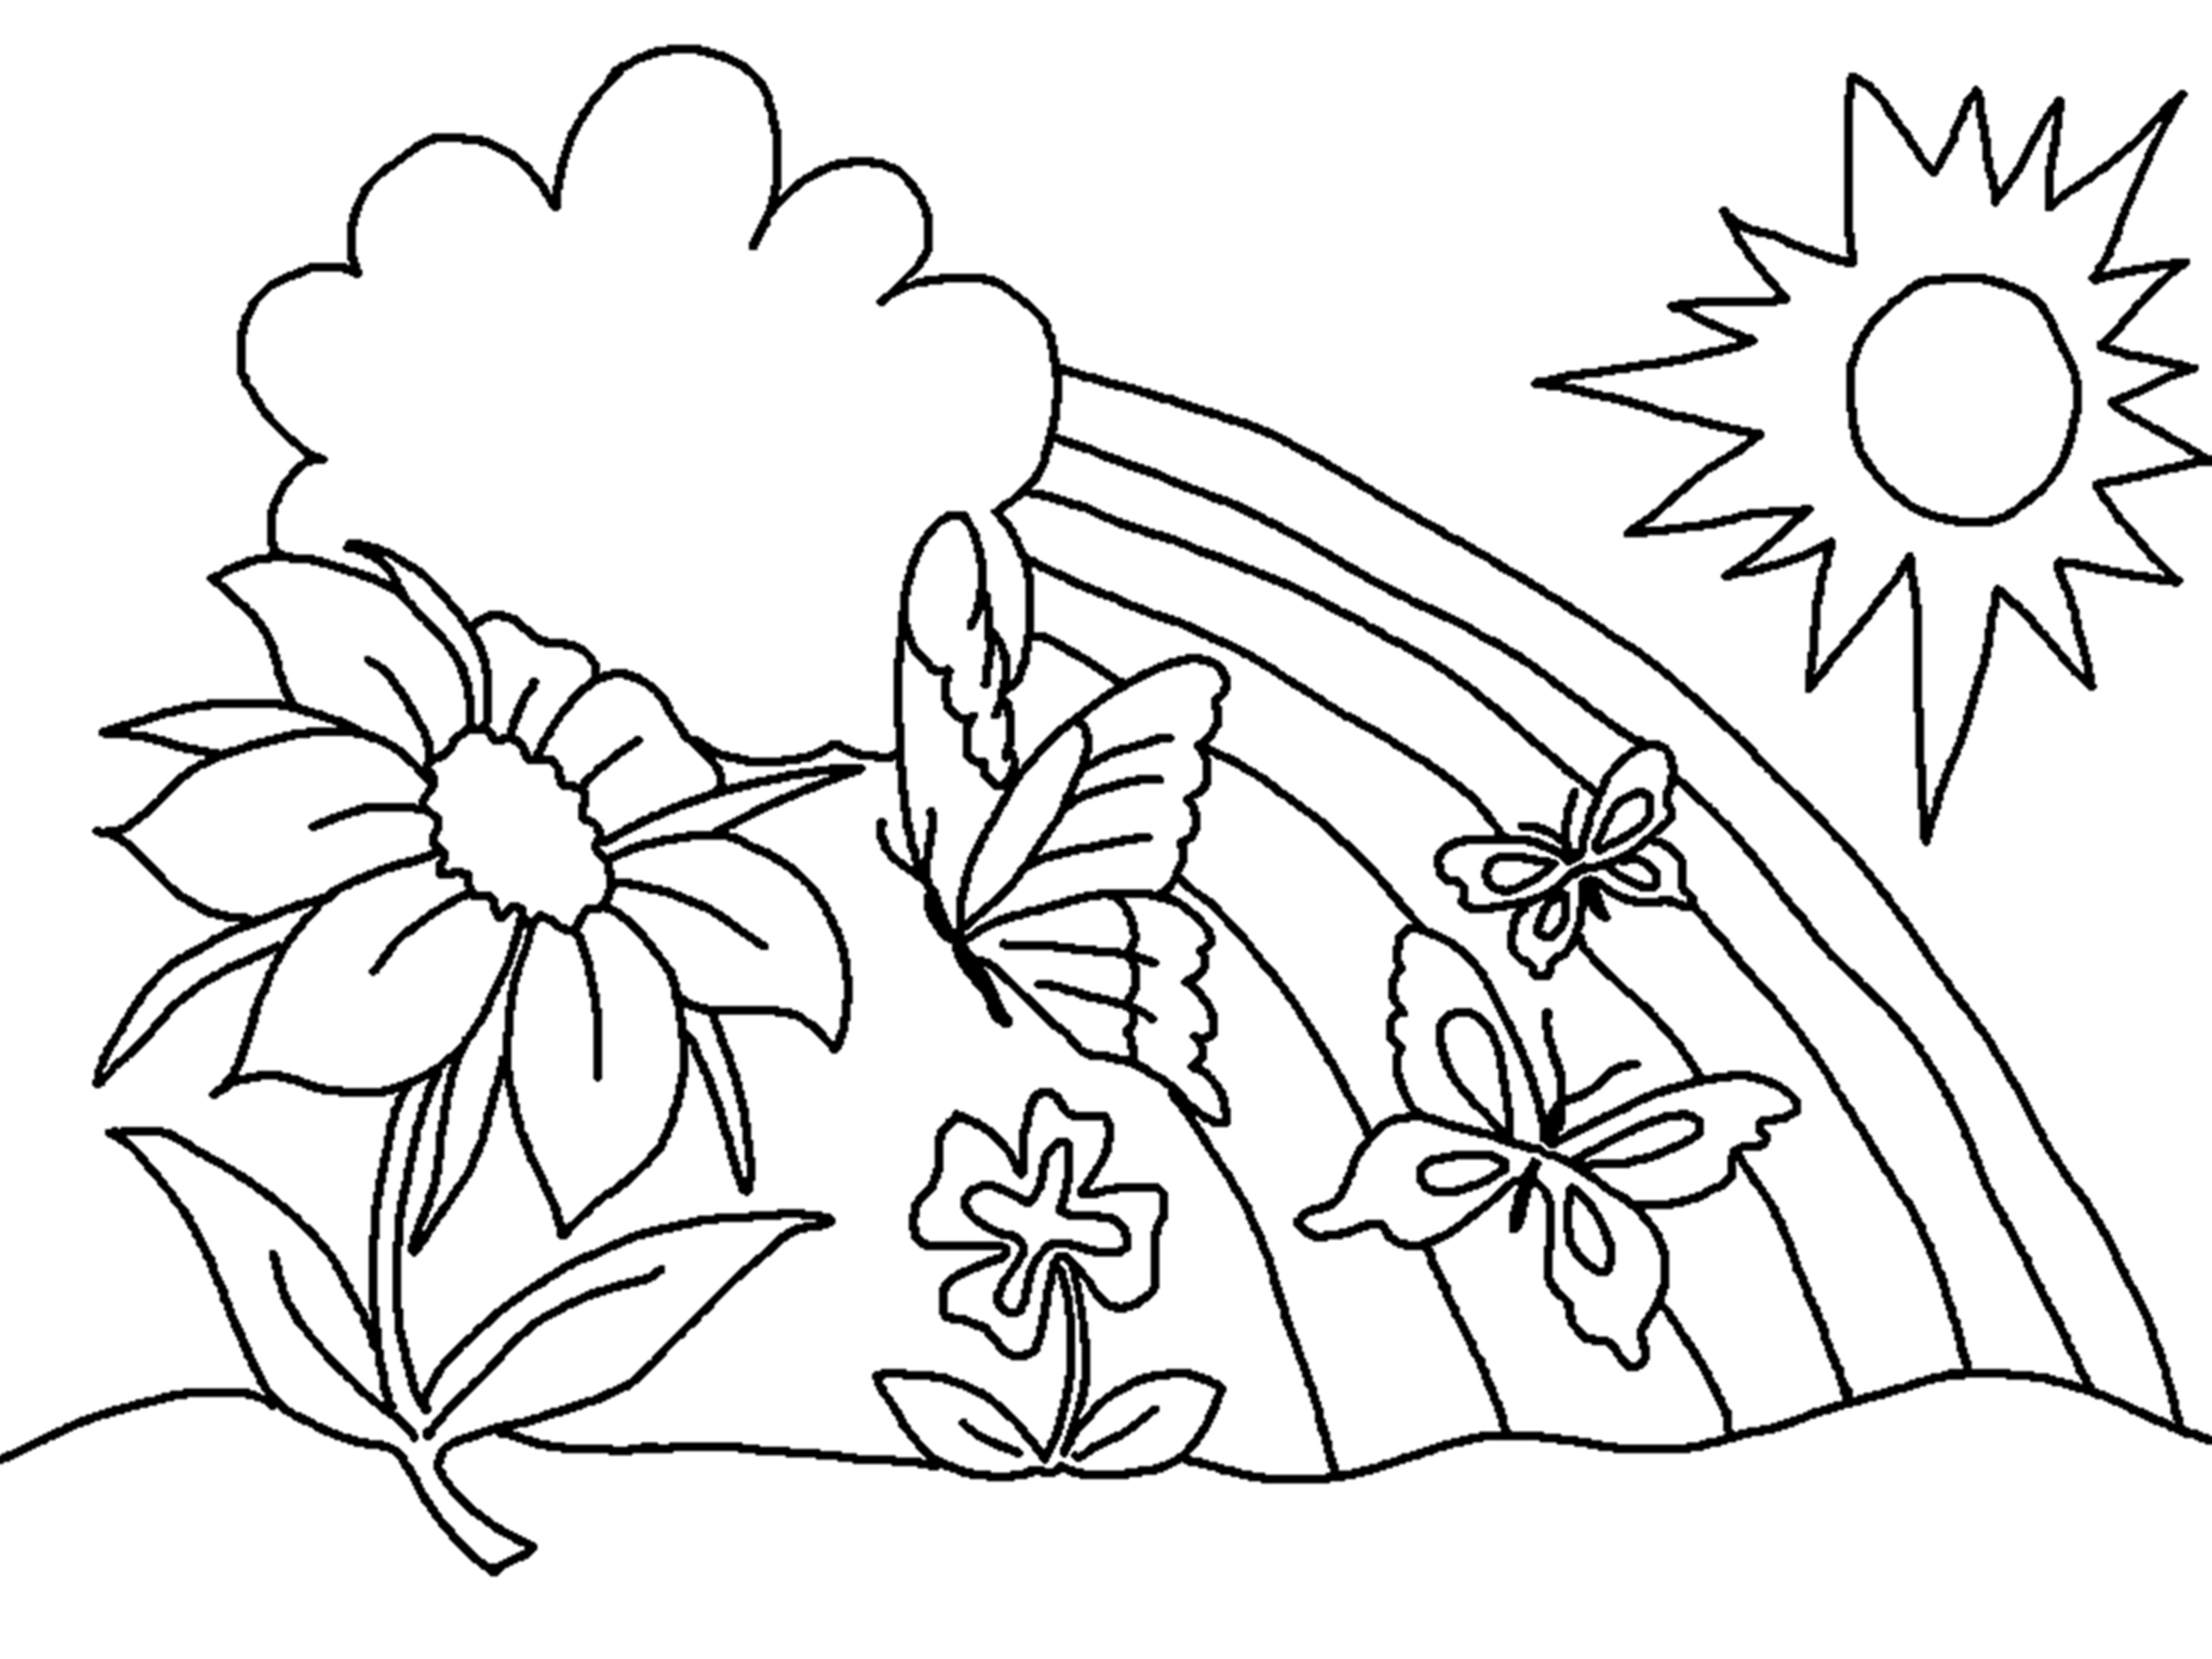 graphic relating to Printable Coloring Pages Flowers identified as Absolutely free Printable Flower Coloring Web pages For Little ones - Perfect